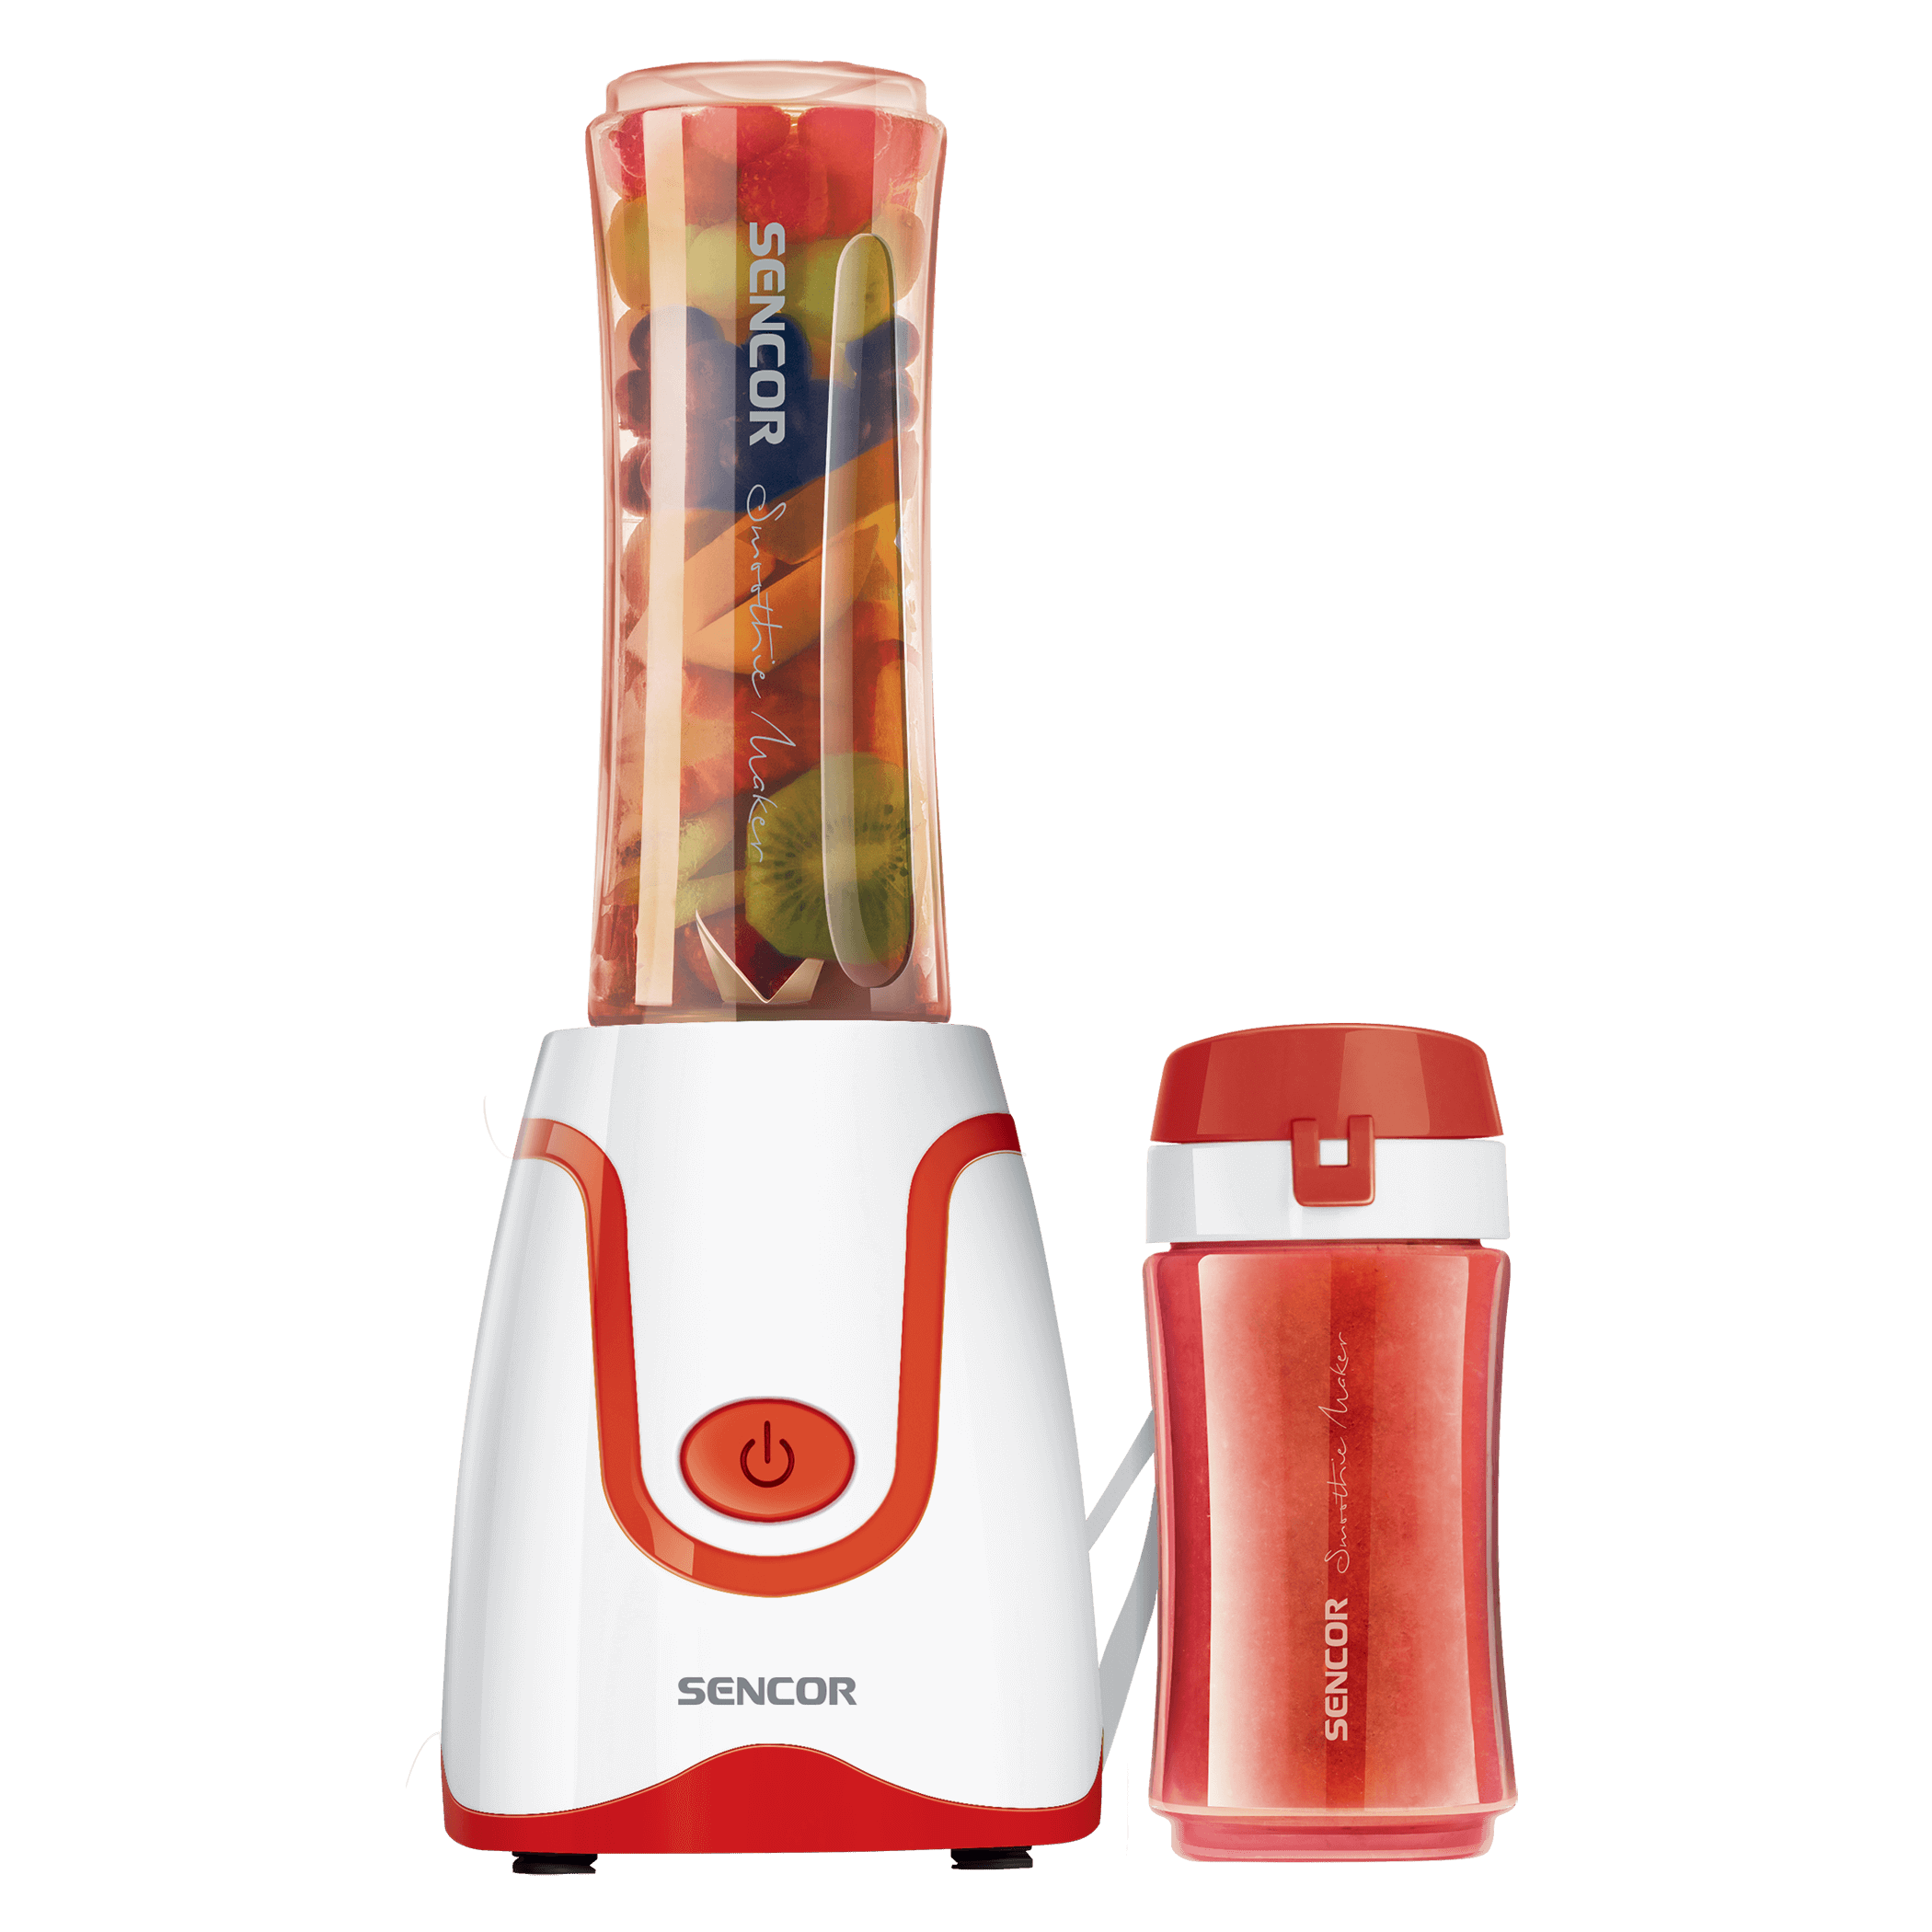 term/fokateg/SBL_2214RD_Smoothie_maker_SENCOR.png